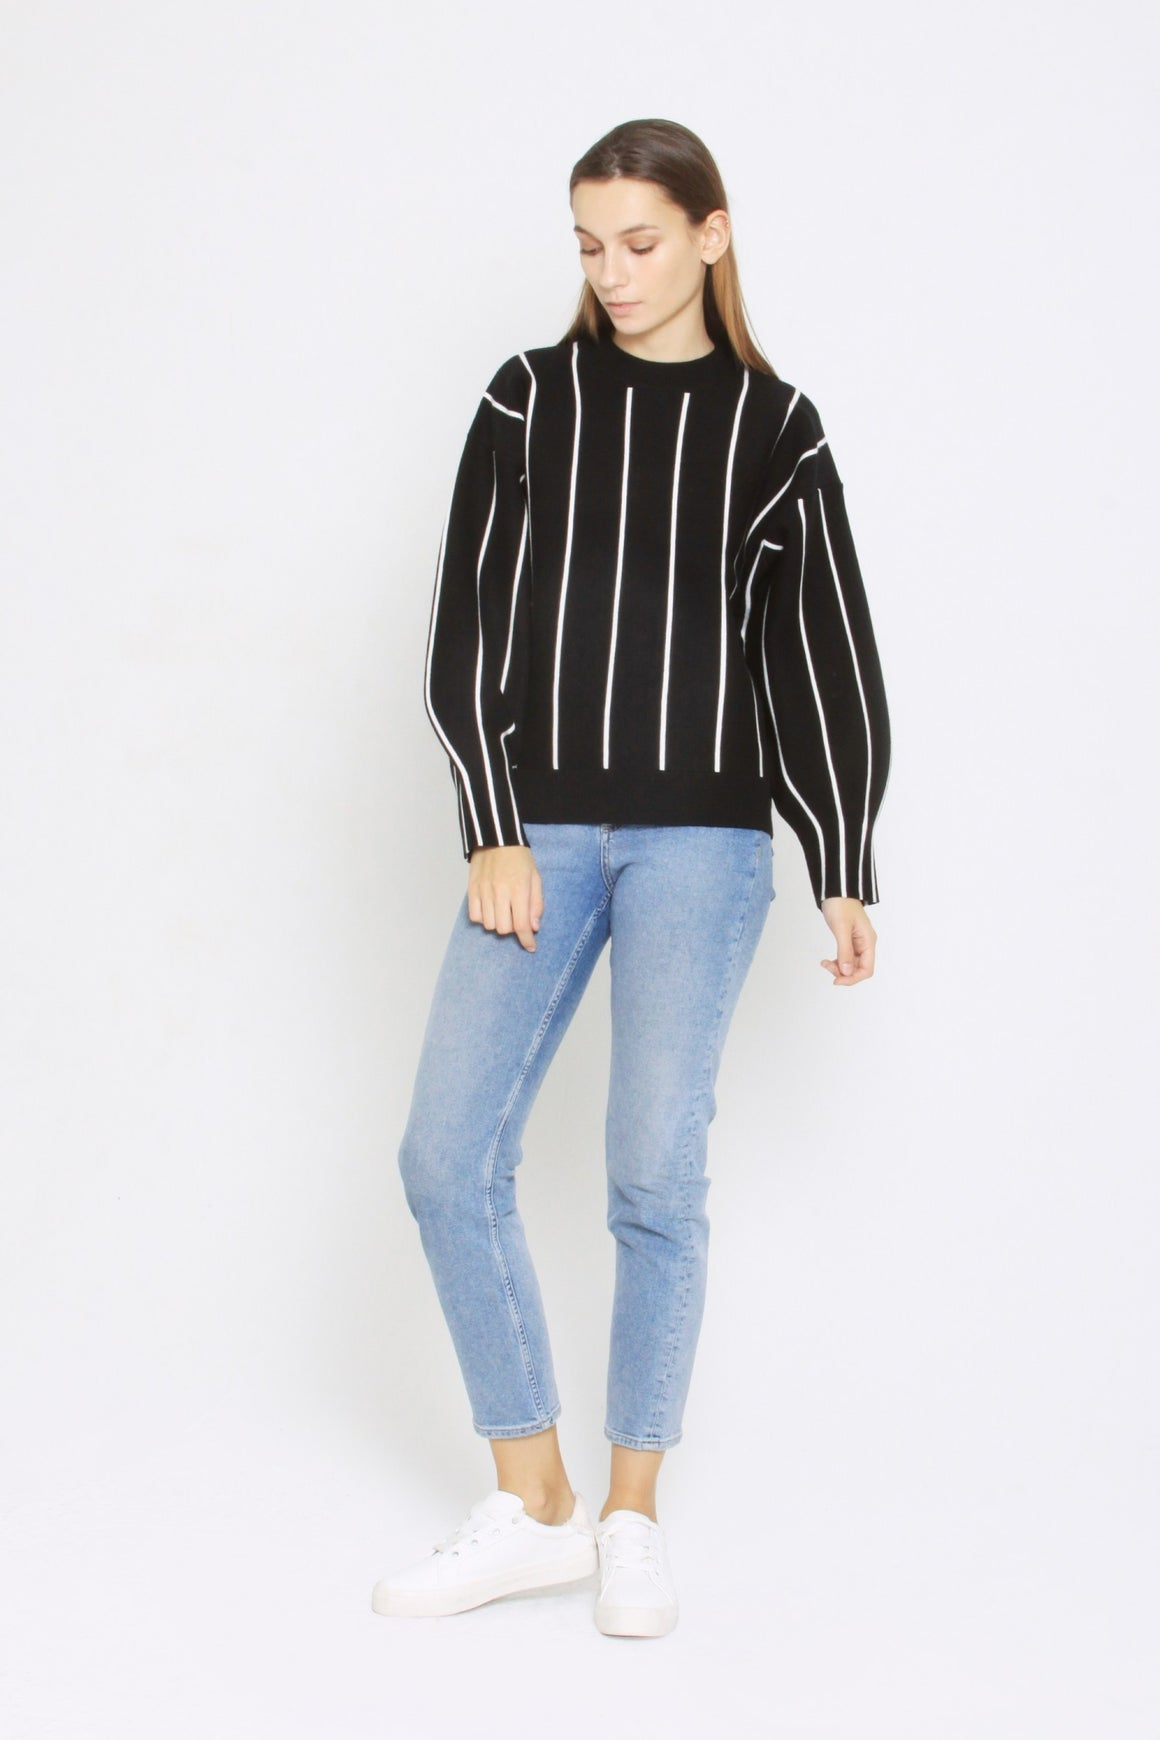 The Polk Stripe Sweater